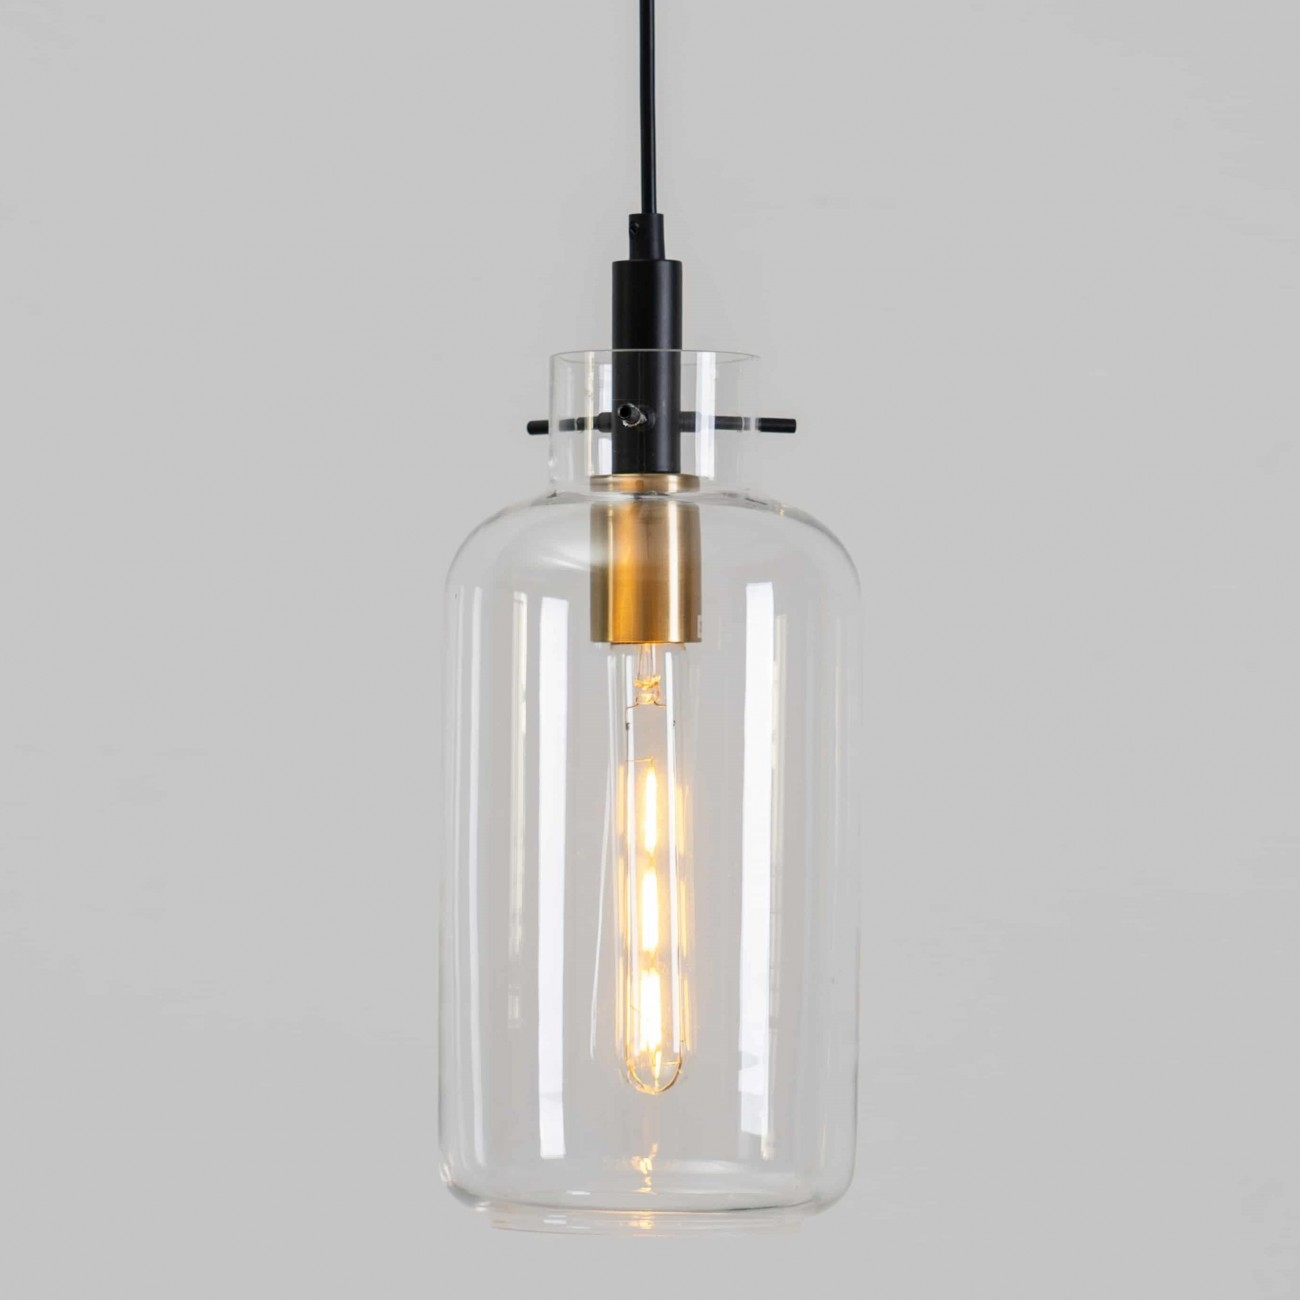 Hanging Light In Crystal Glass